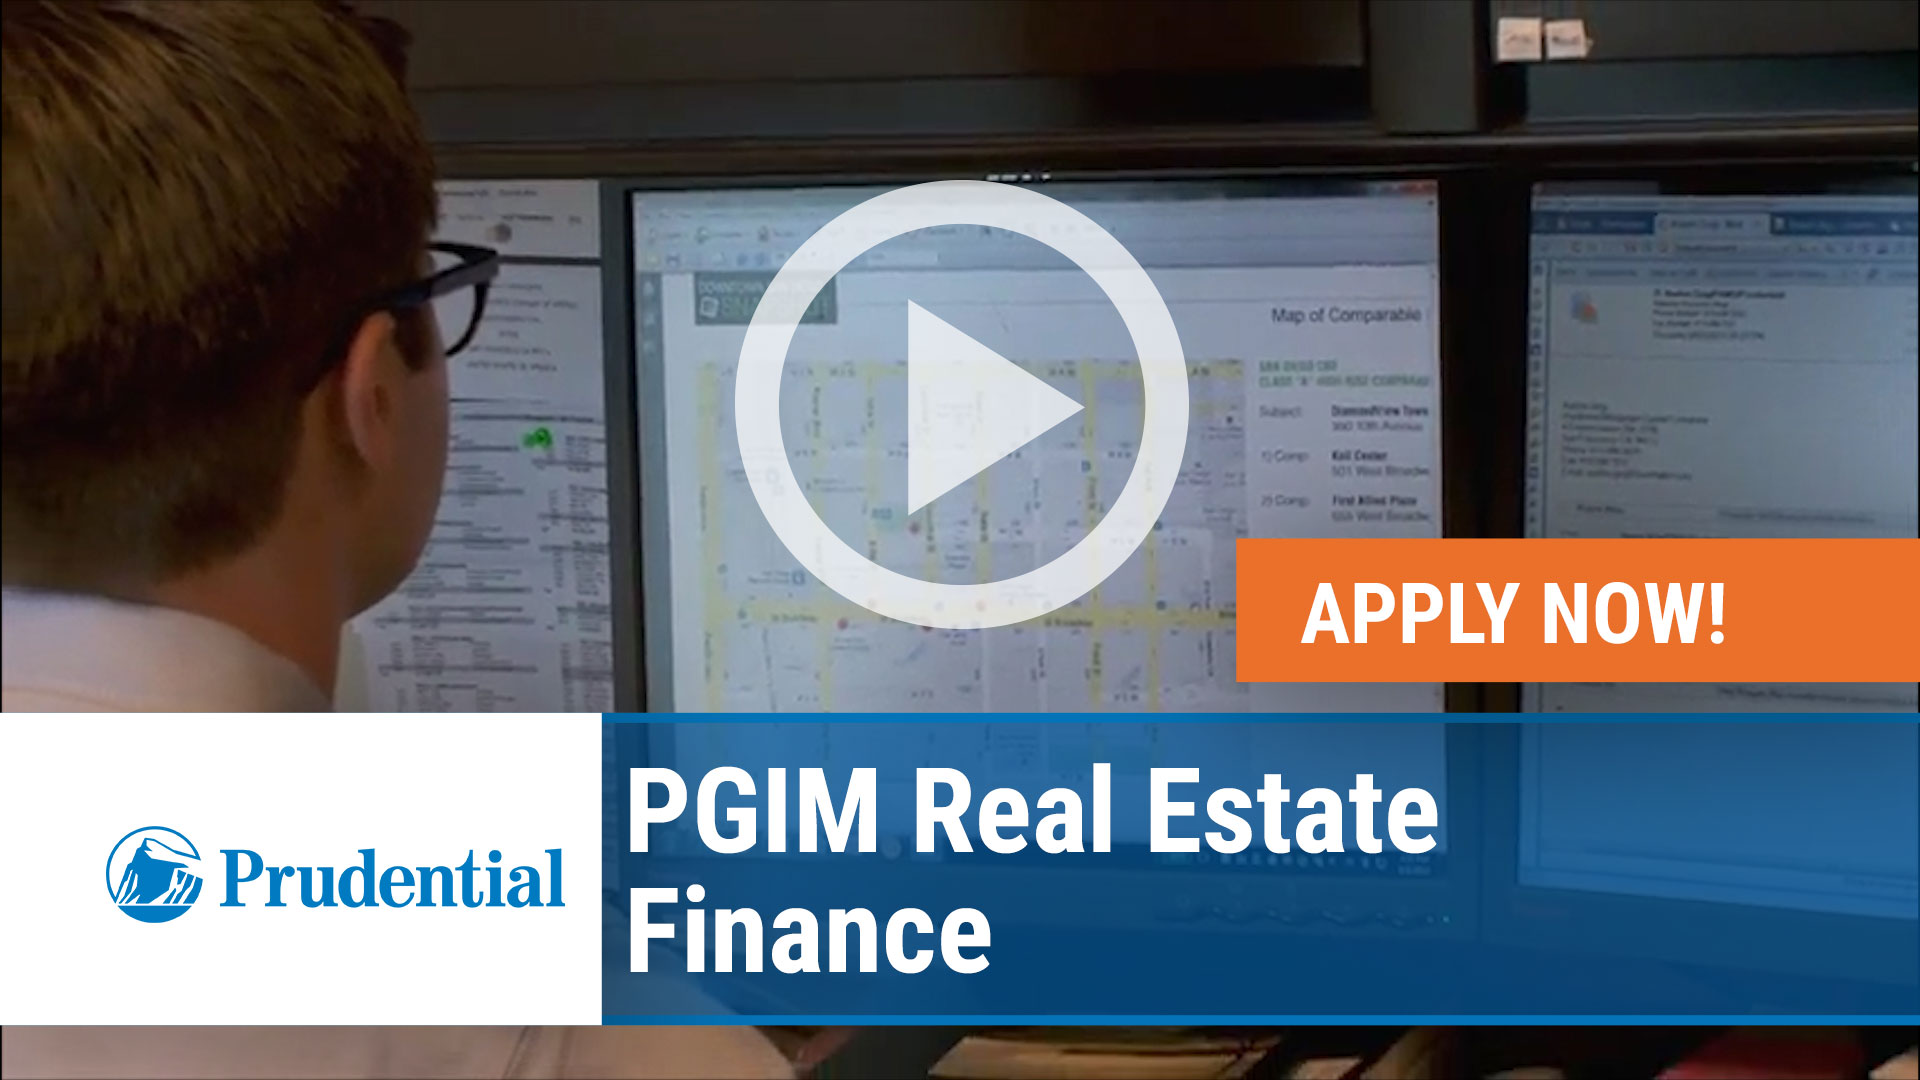 Watch our careers video for available job opening PGIM Real Estate Finance in Chicago, IL